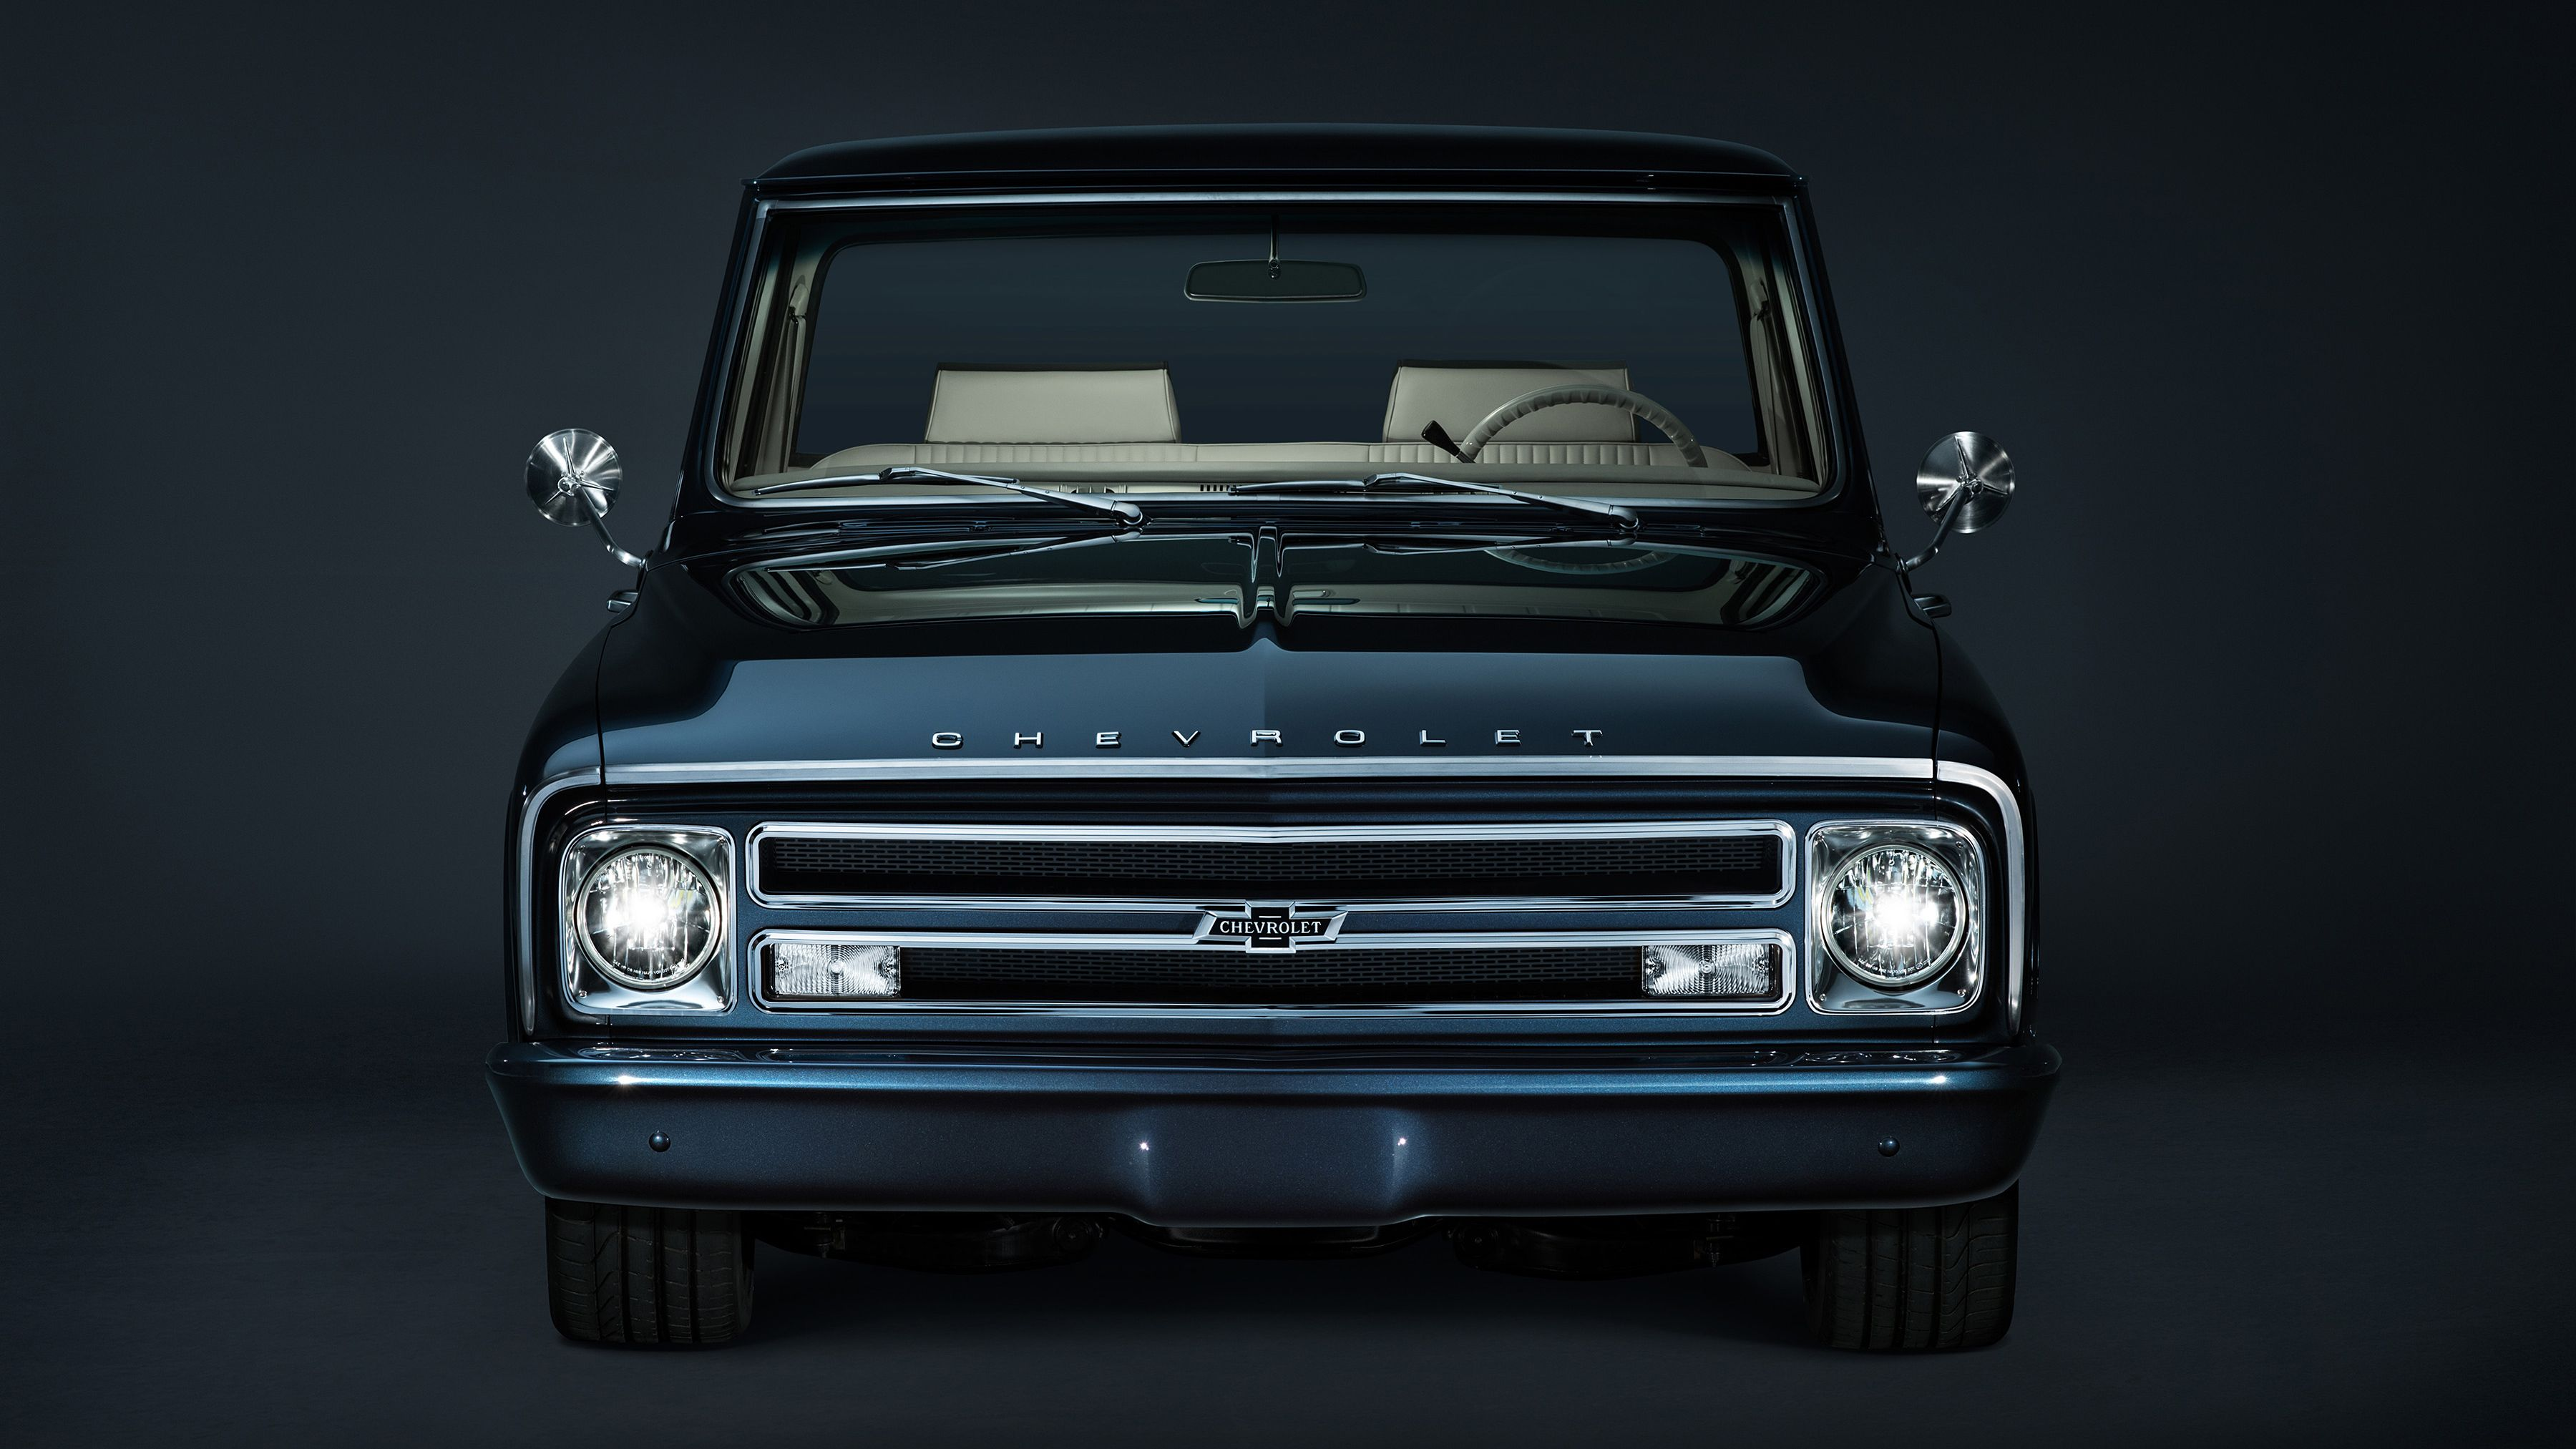 1967 Chevrolet C10 Centennial Sema Truck Wallpaper Hd Car